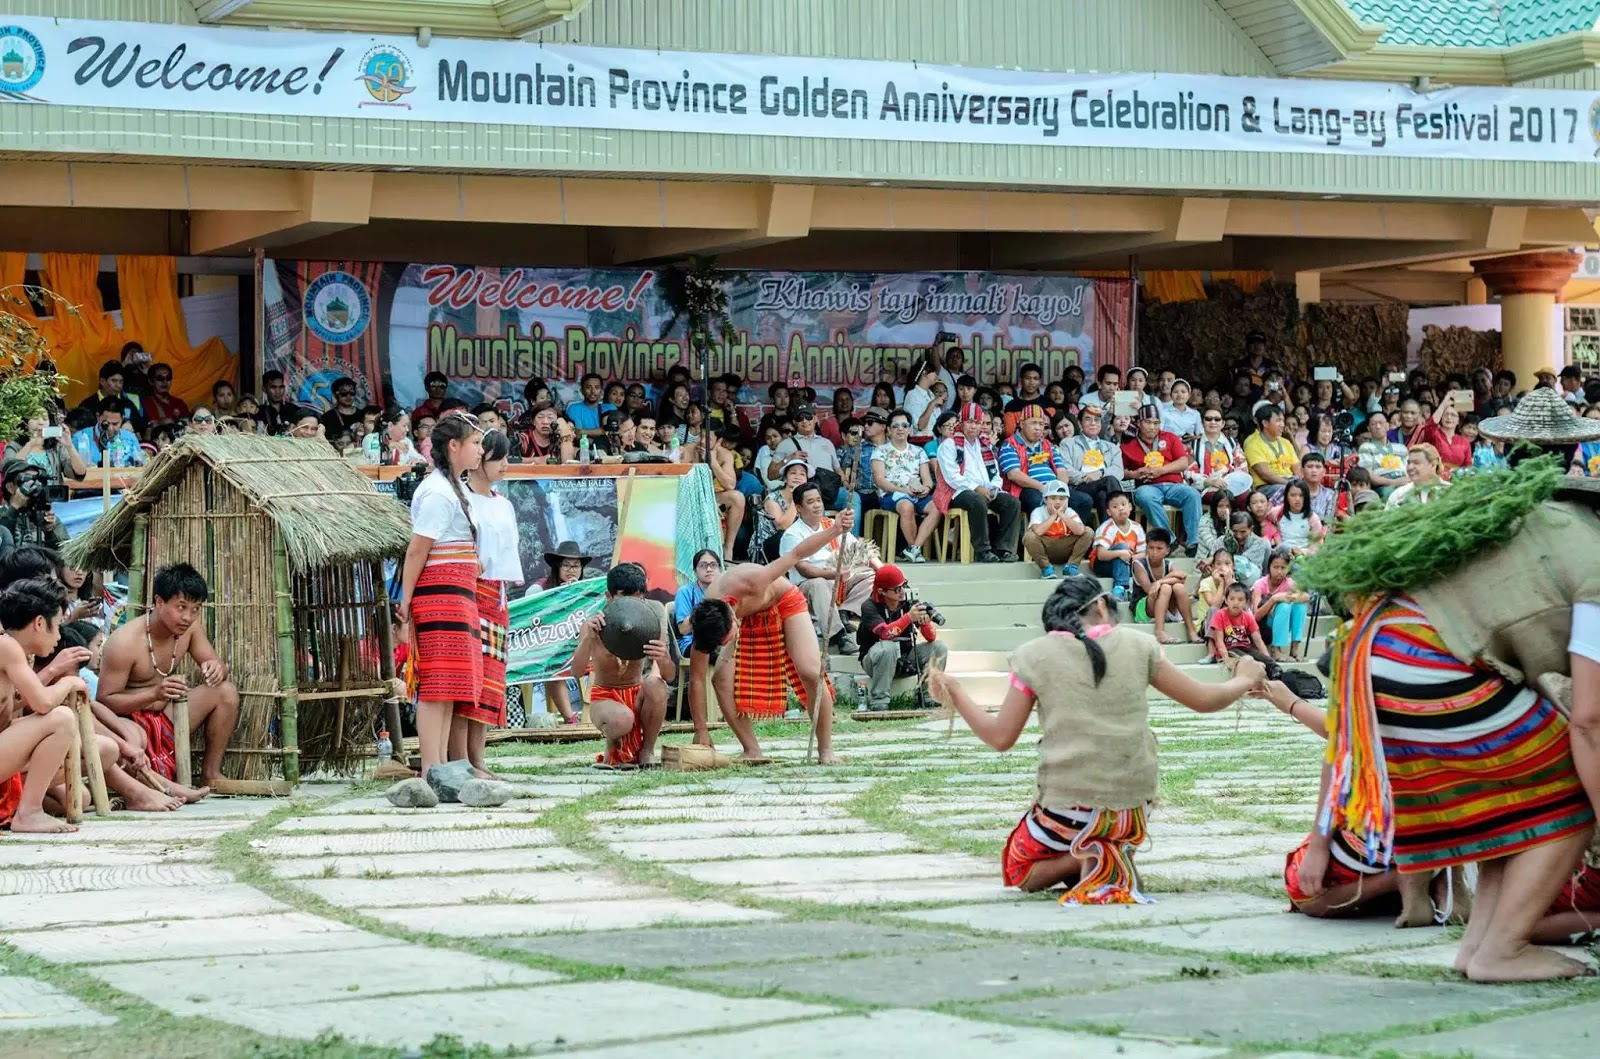 Mountain Province Golden Anniversary Celebration and 13th Lang-Ay Festival Bontoc Cordillera Administrative Region Philippines